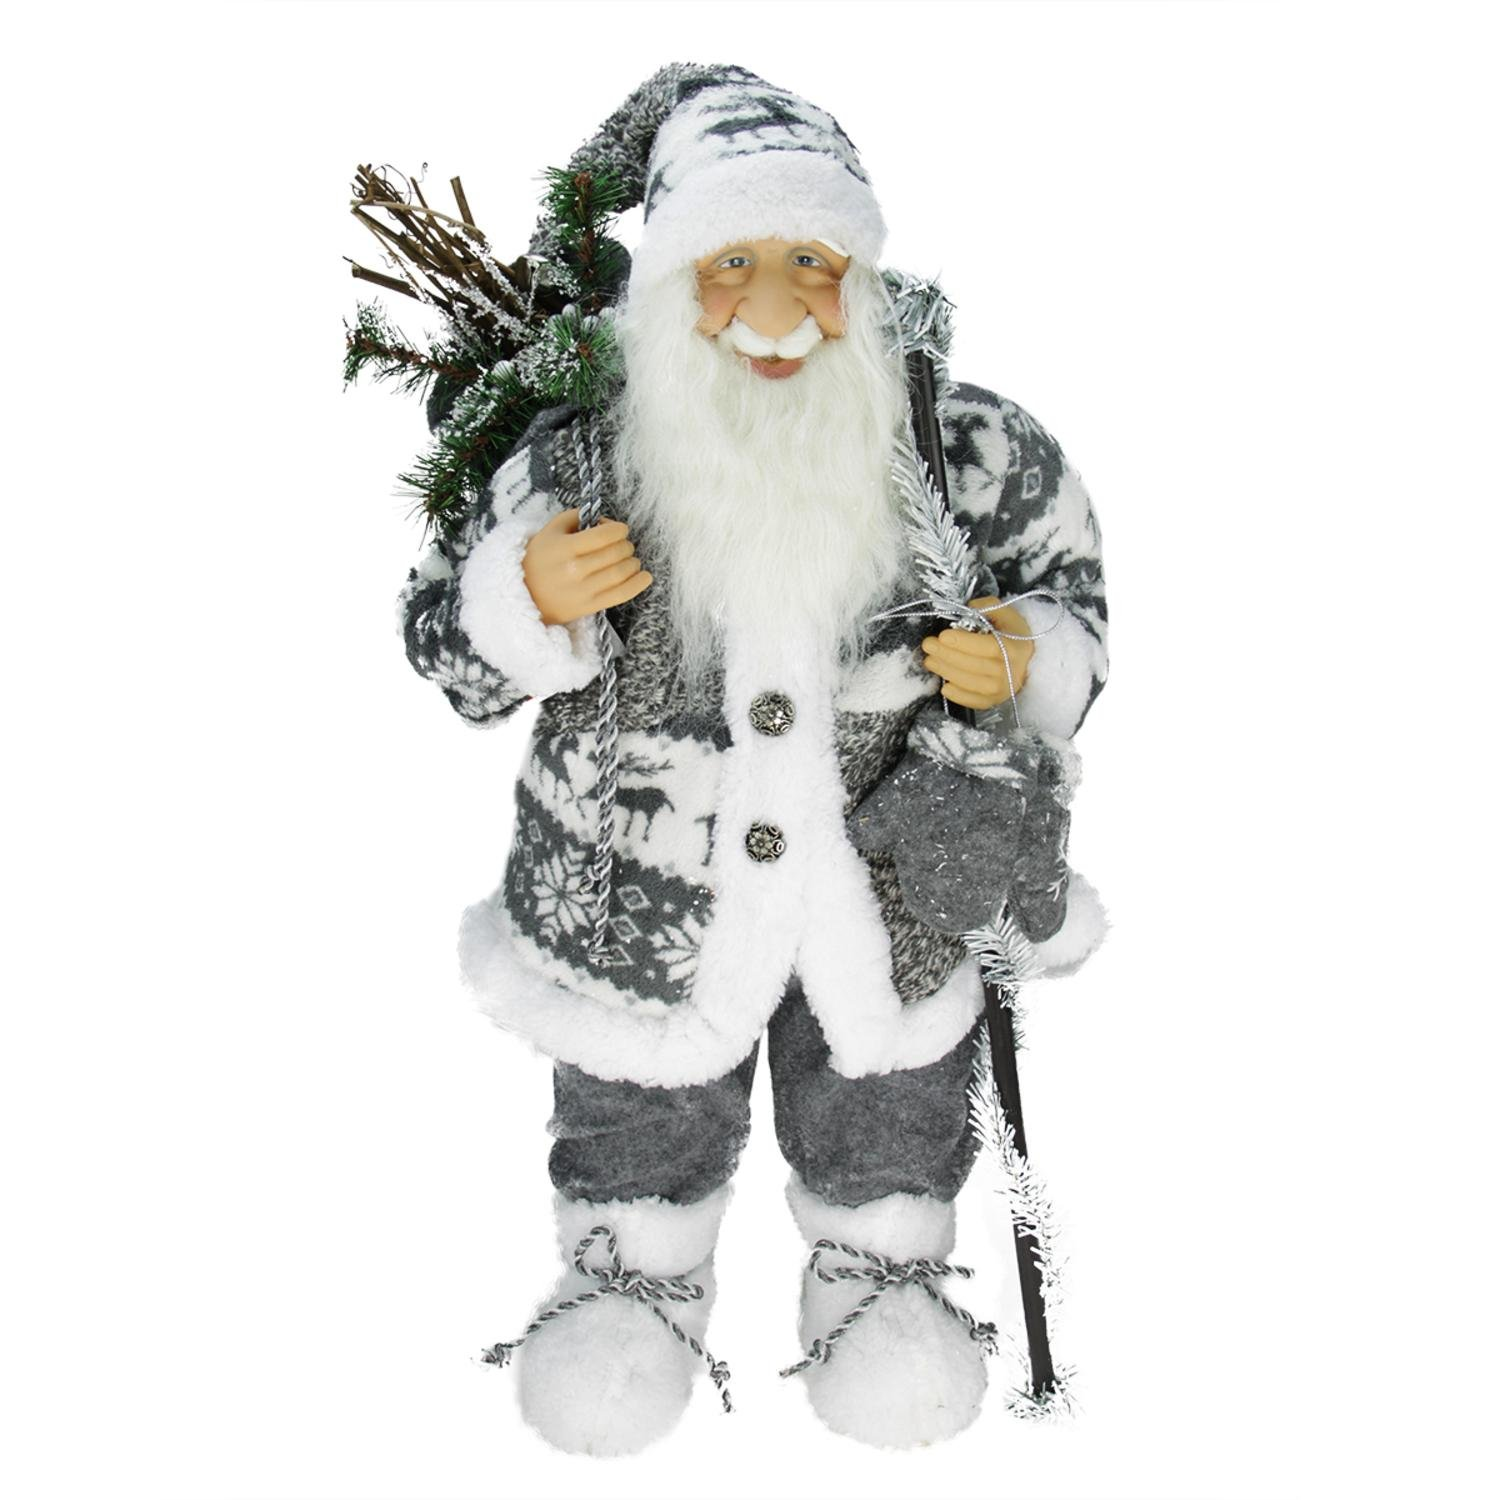 Northlight 24'' Country Patchwork Standing Santa Claus Christmas Figure